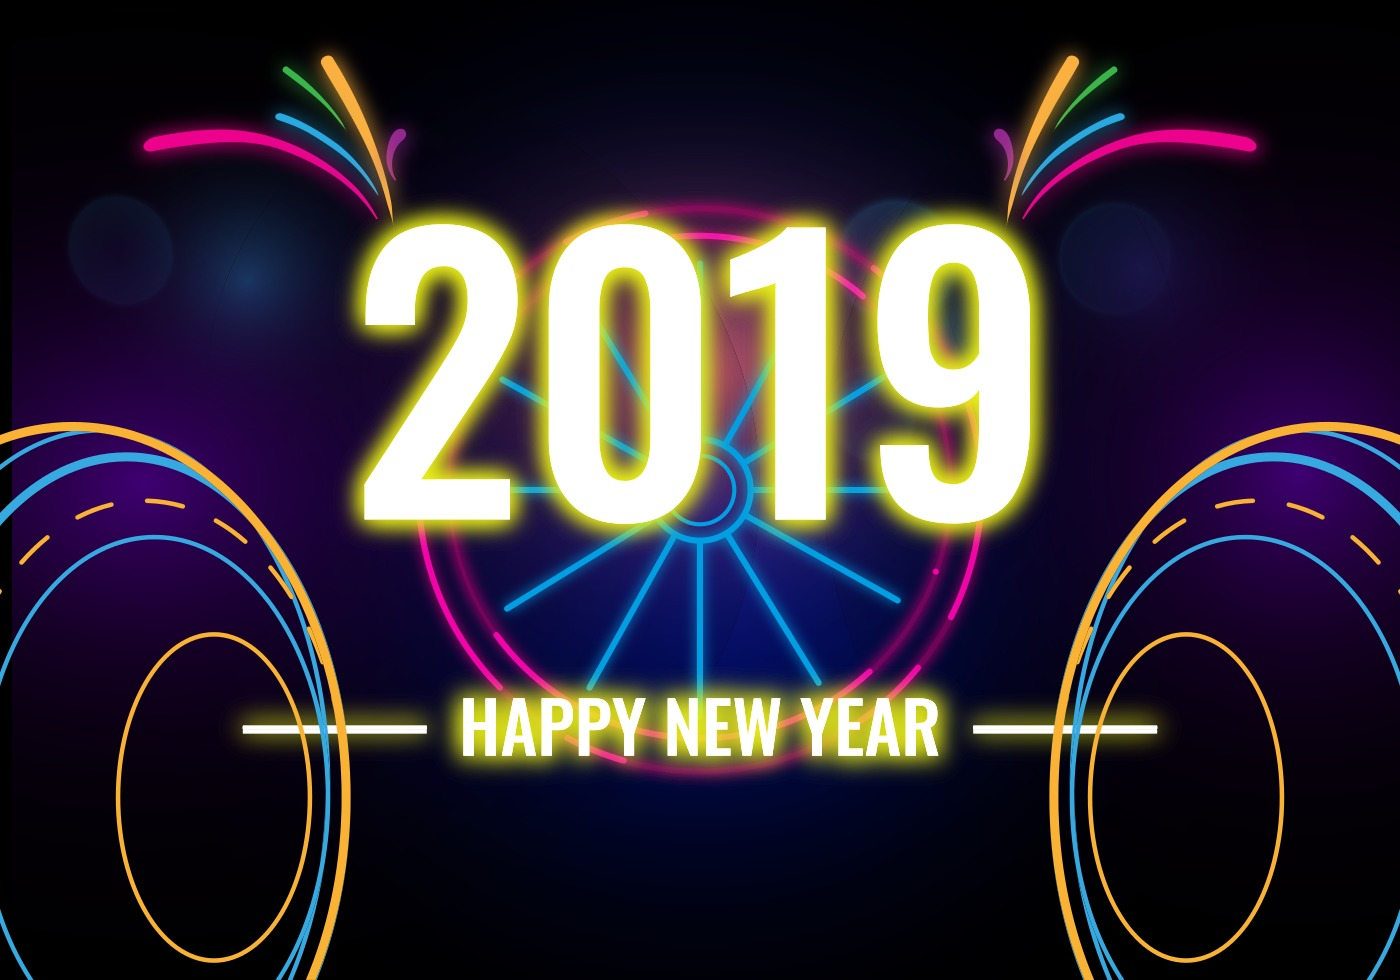 Download 2019 Celebration, Happy New Year Clipart image #47300